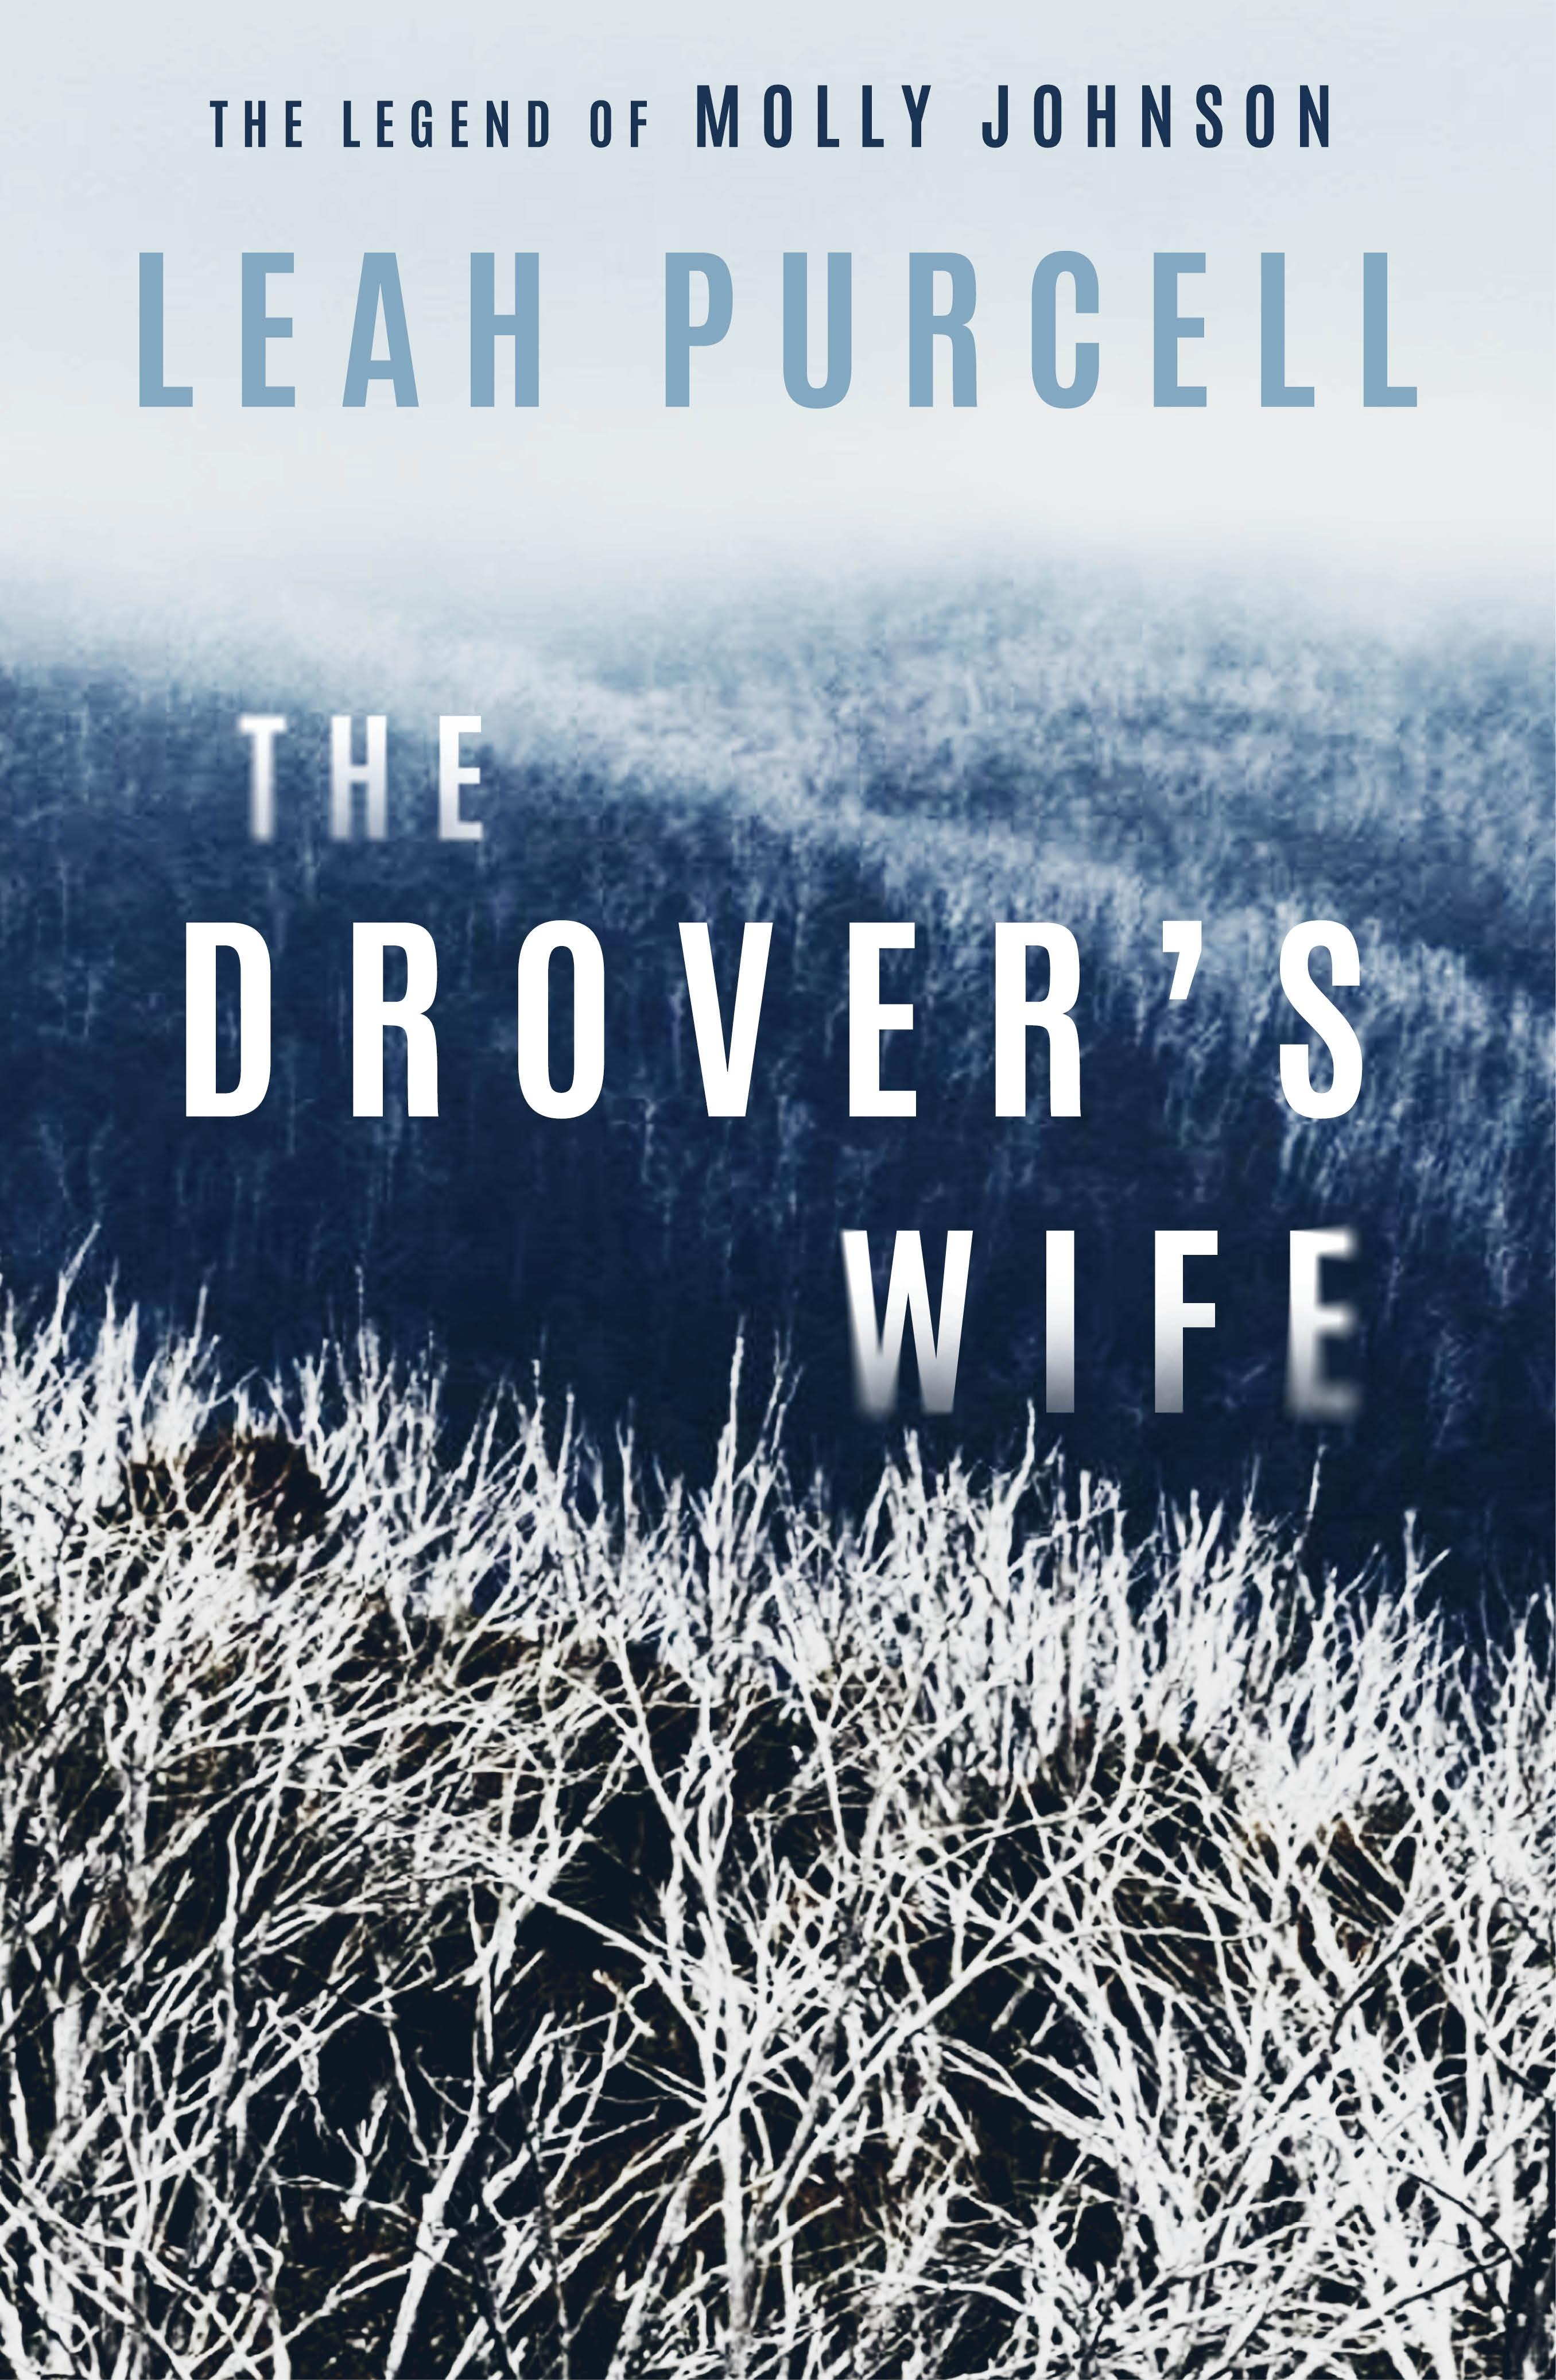 TheDrover'sWife